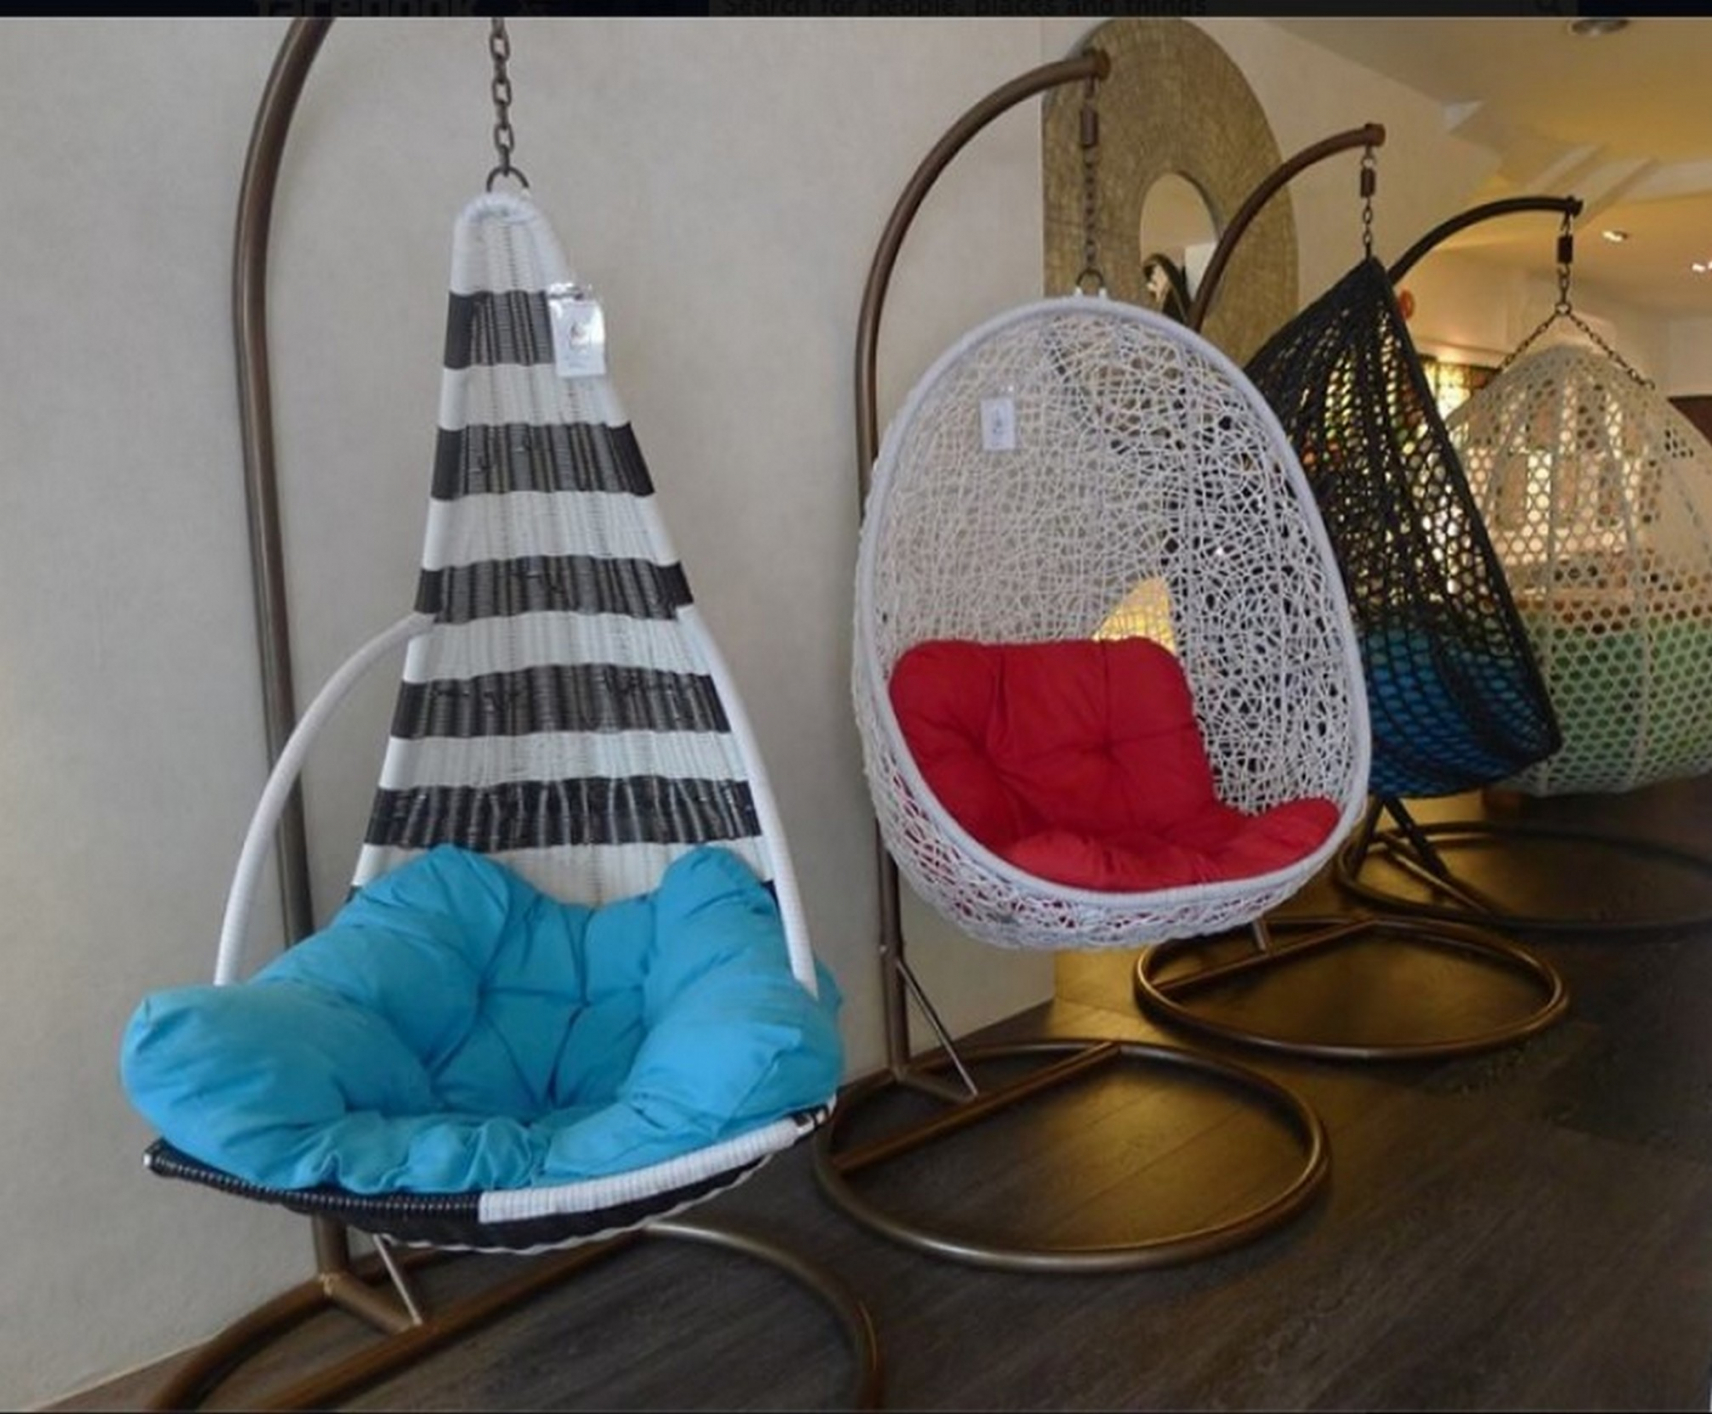 hammock chair for bedroom ergonomic reviews reddit 15 diy hanging chairs that will add a bit of fun to the house